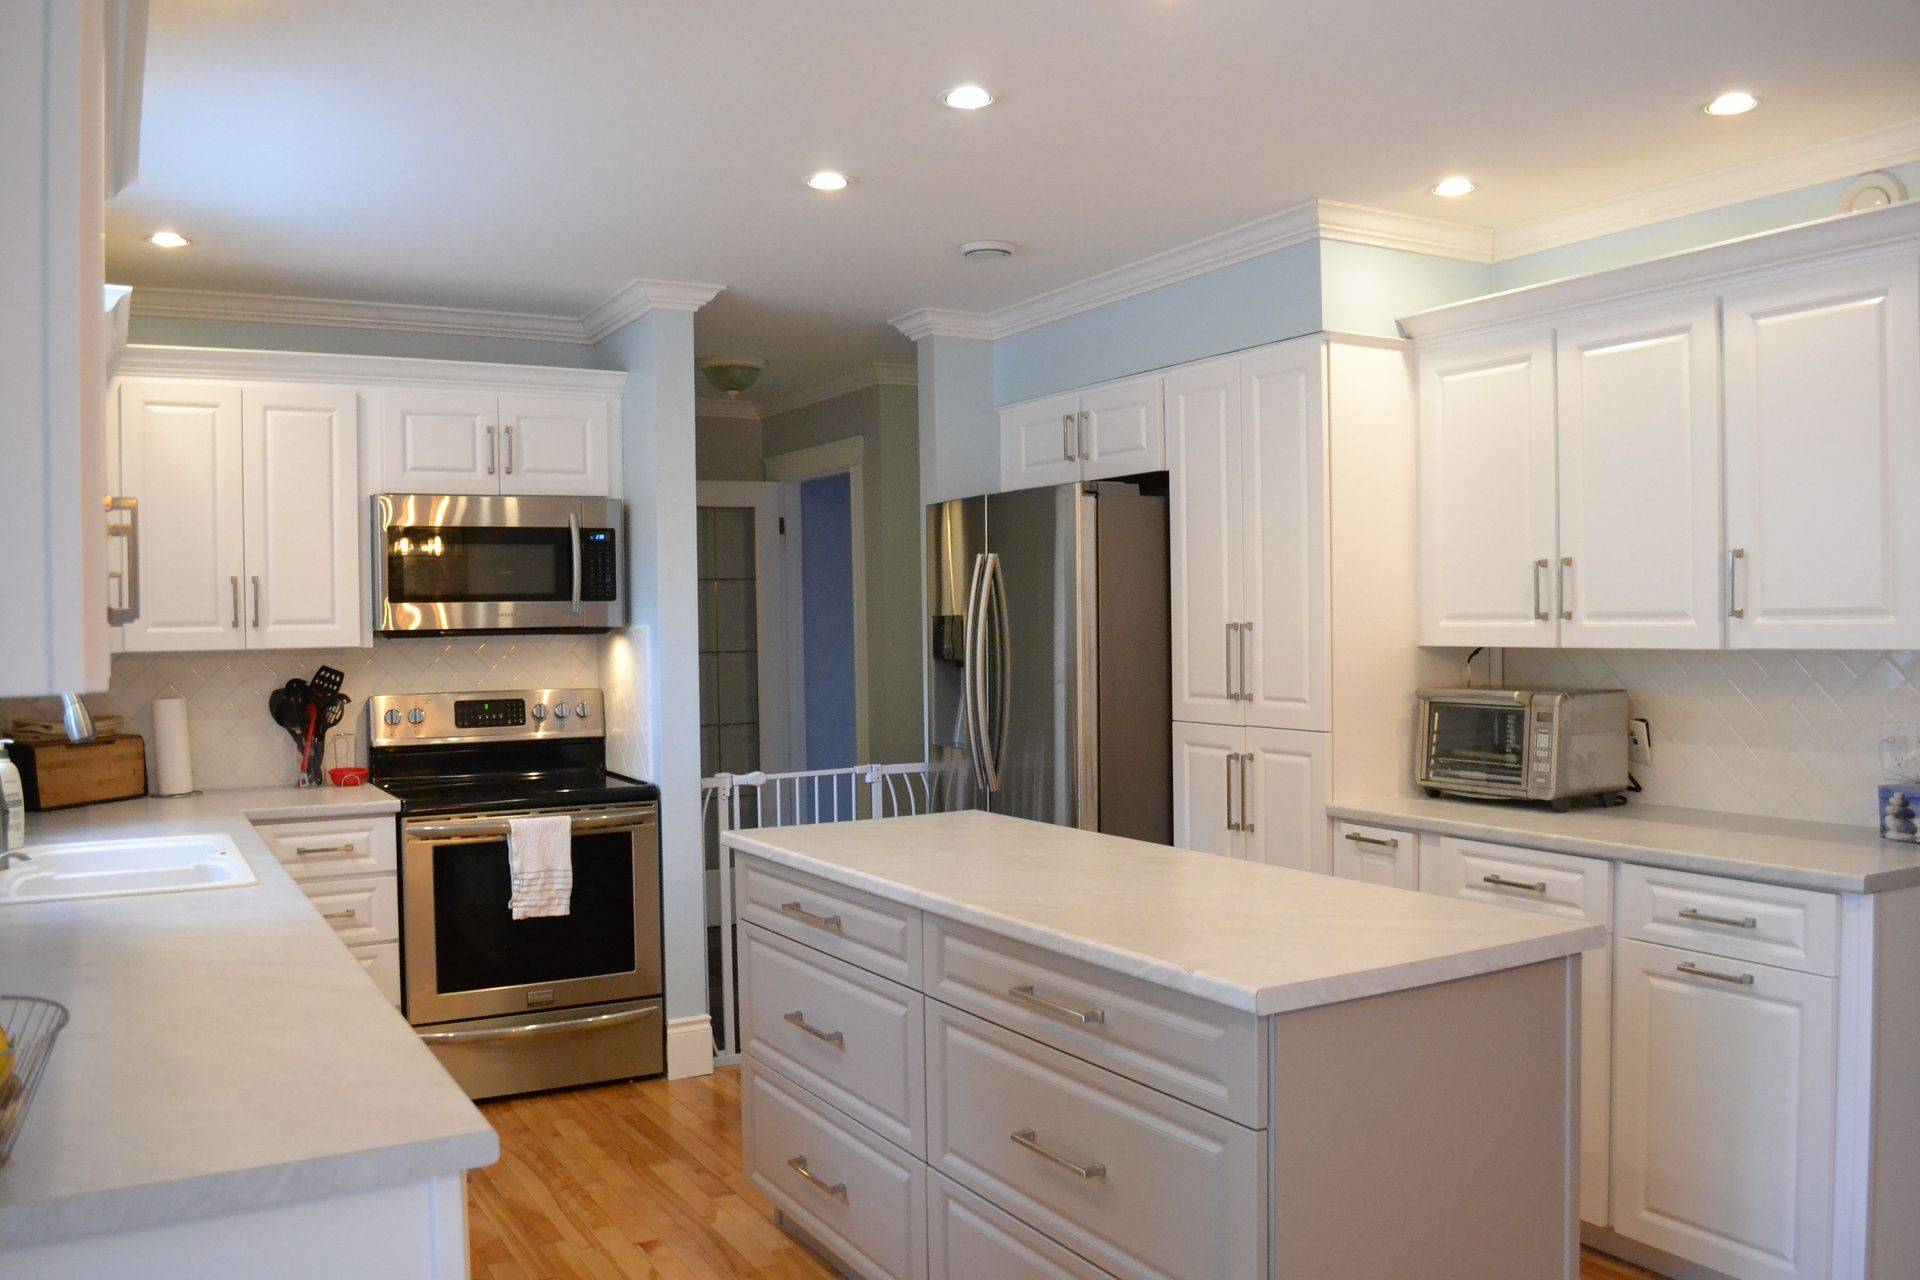 Kitchen Cabinets Repair Calgary Professional Cabinet Refacing And Door Refinishing Edmonton